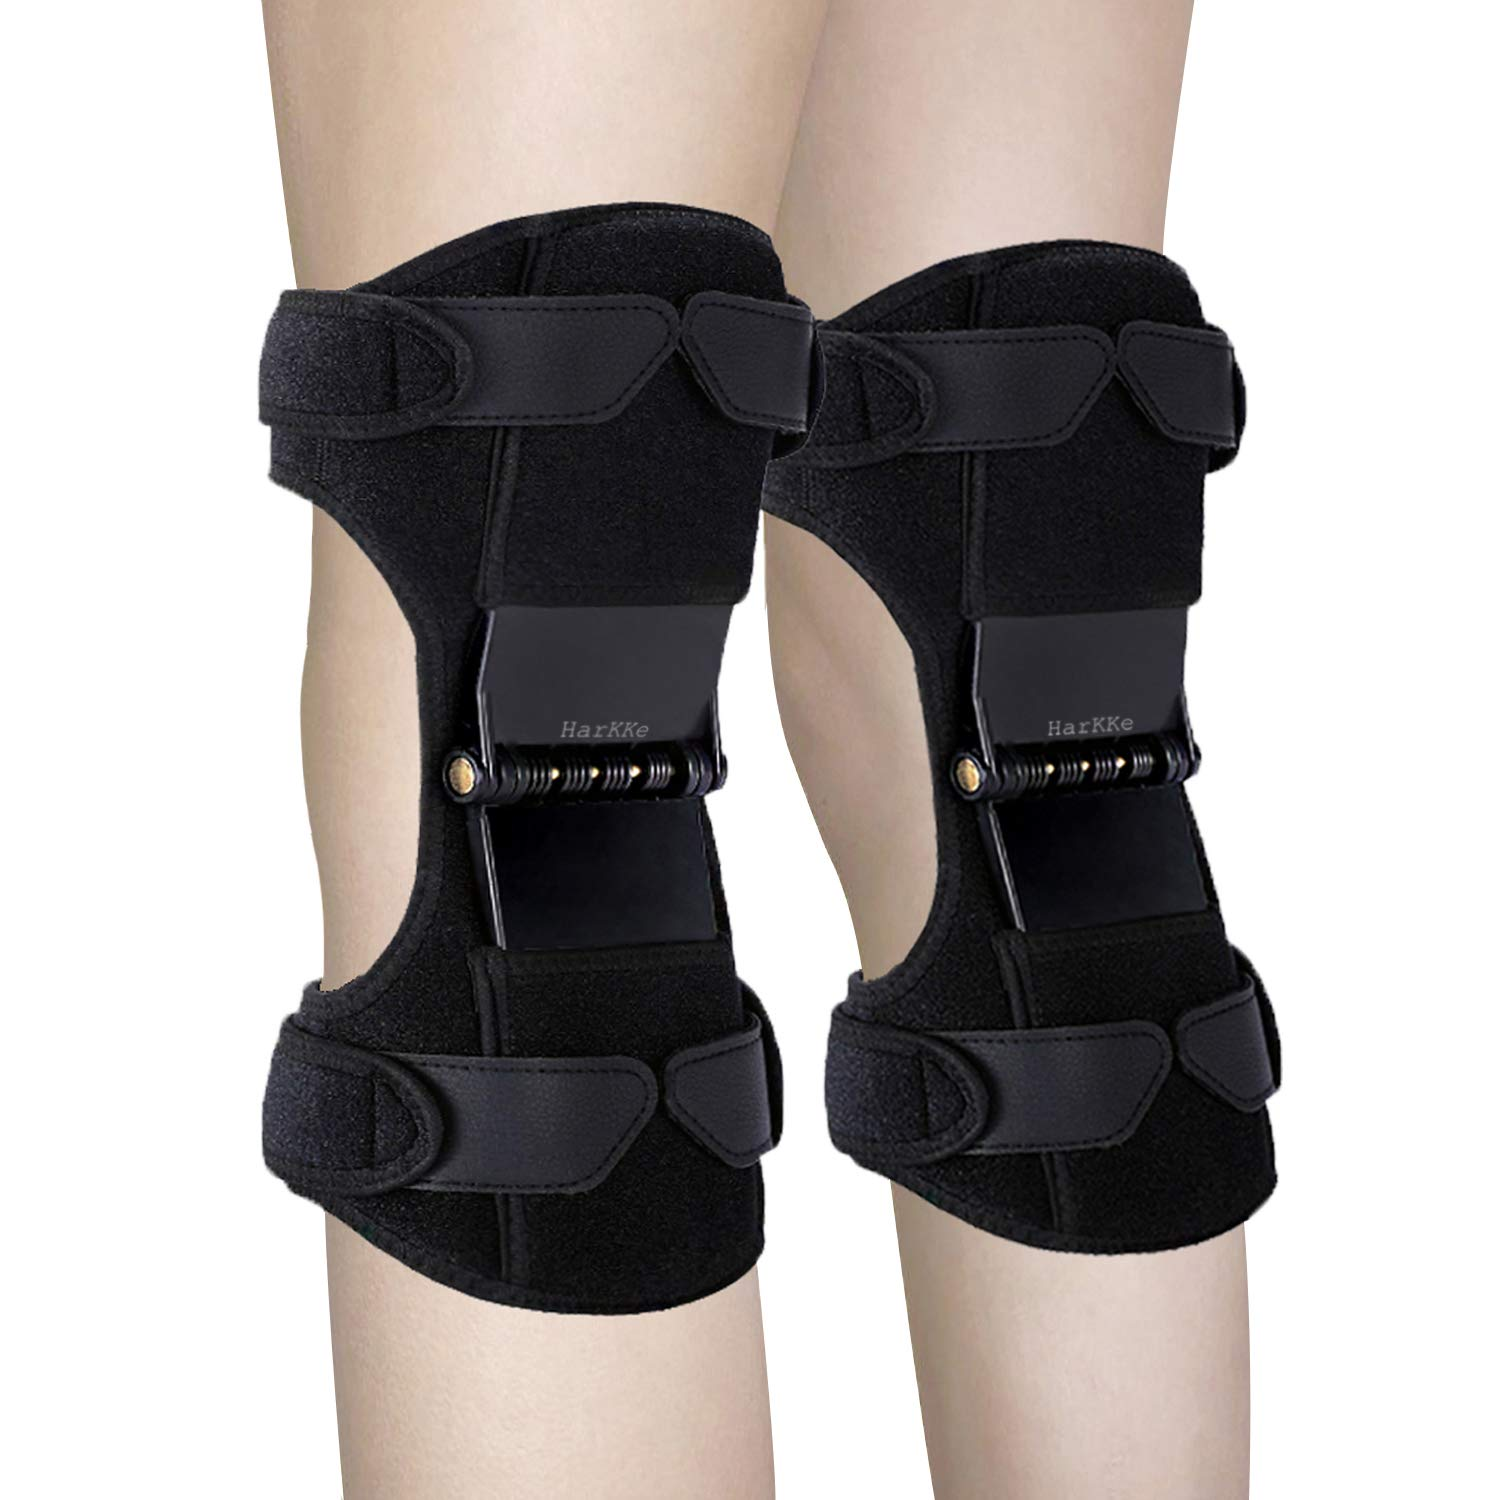 Knee Support Pads, 2020 Upgrade Power Knee Stabilizer Pads Knee Brace with 4 Powerful Springs, Breathable Protective Booster Gear for Men Women Training Squat Preventing Excessive Knee Flexion